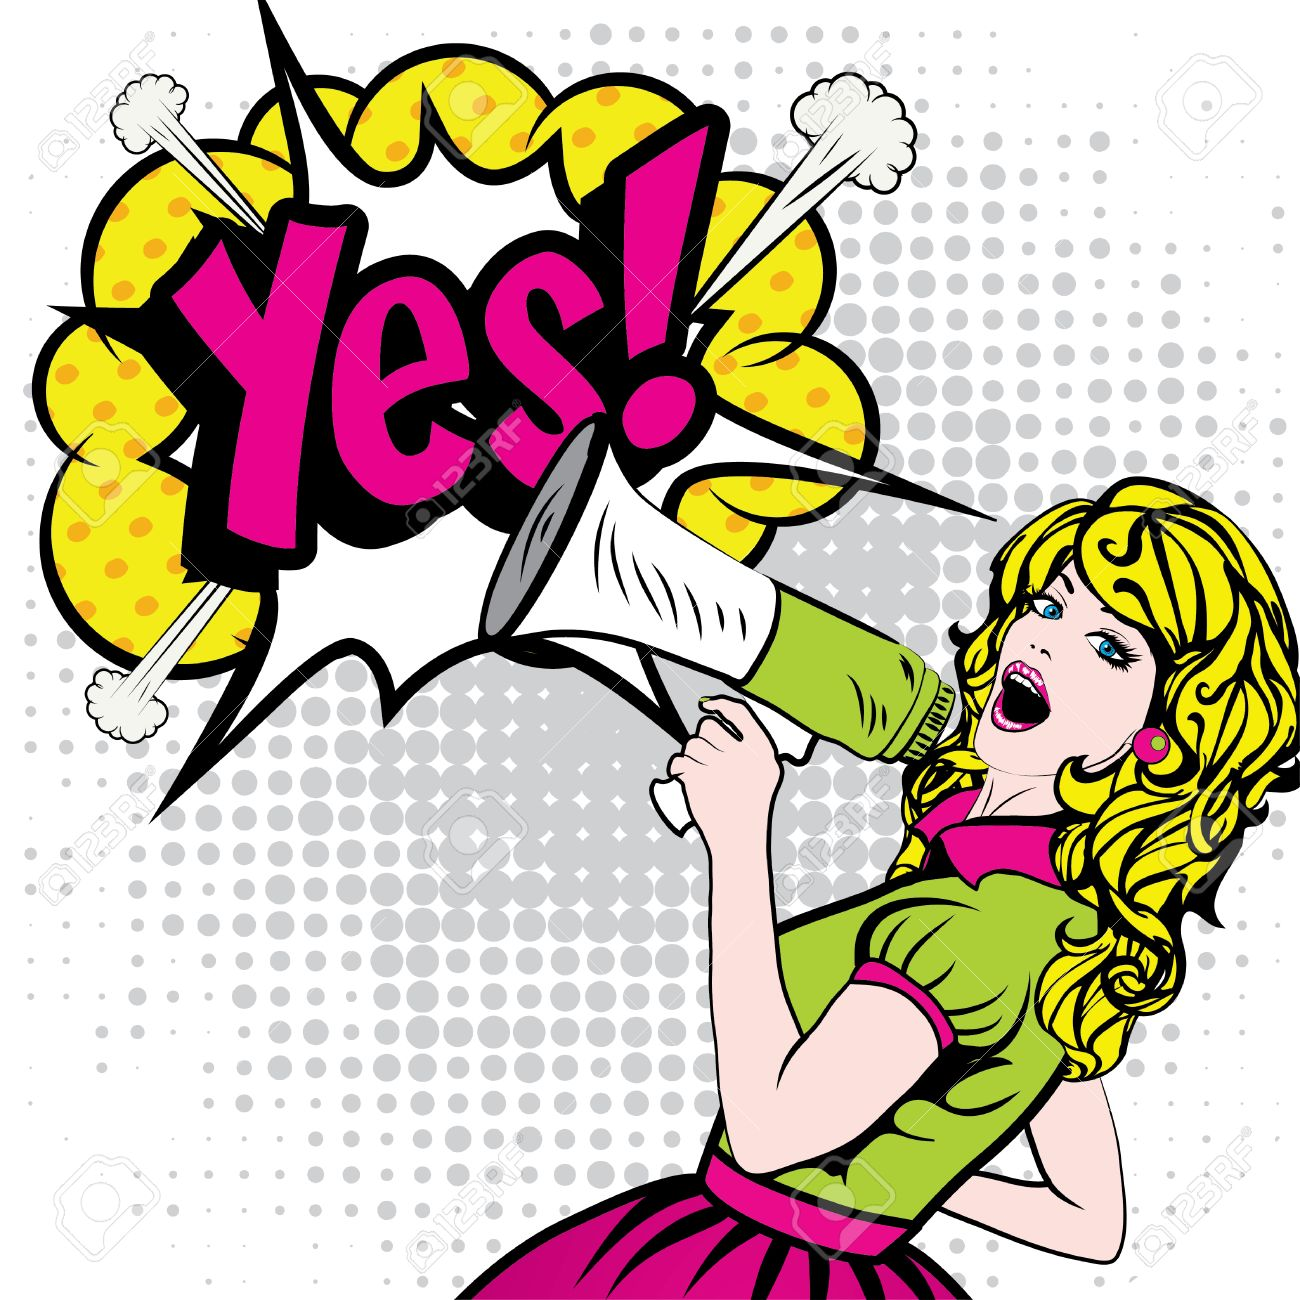 Pop Art Woman with Megaphone saying Yes! - 52038973